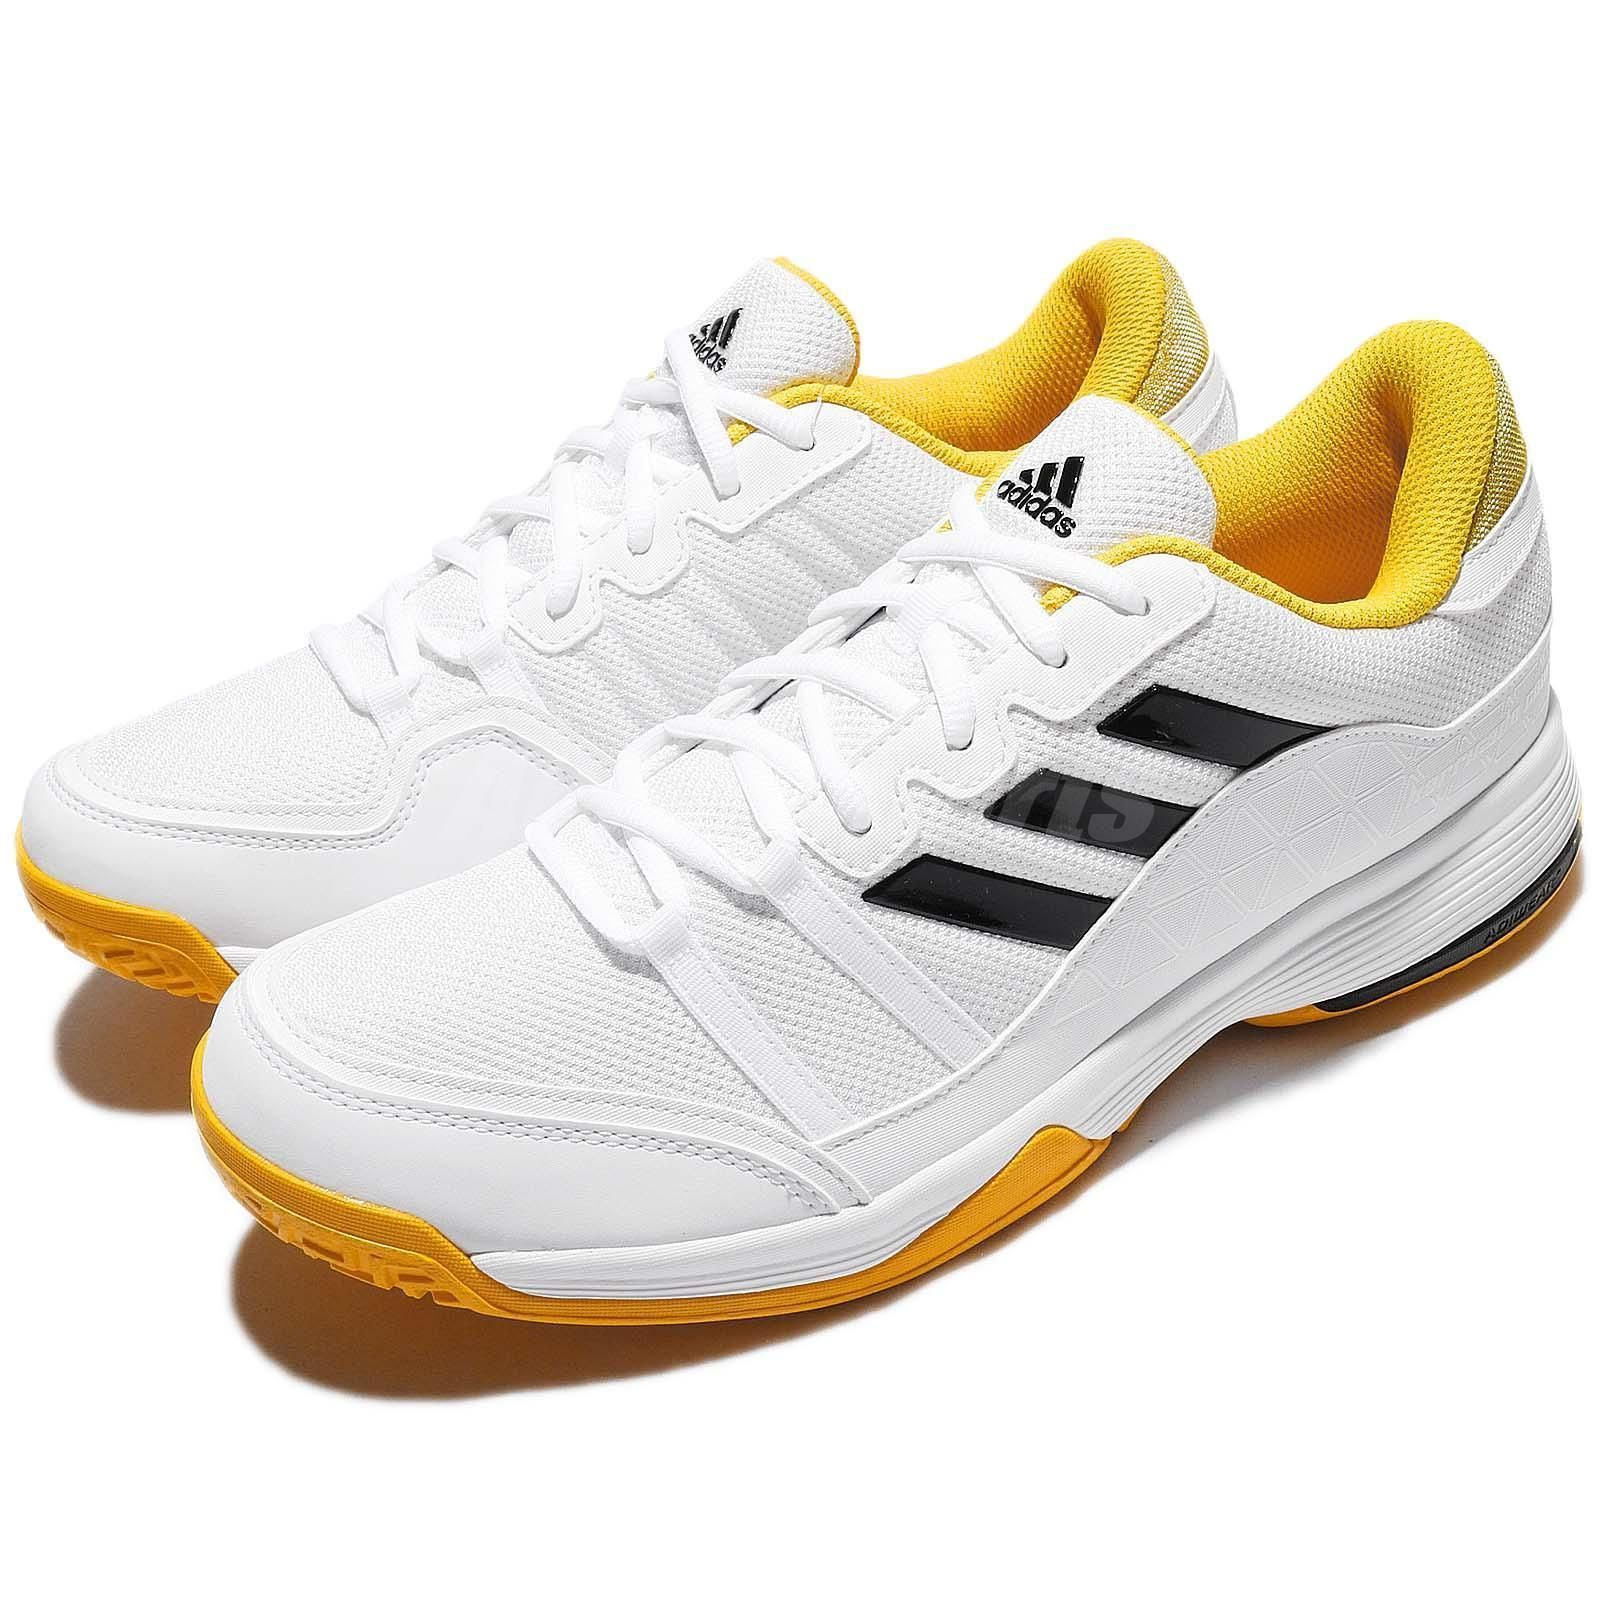 adidas Barricade Court White Yellow Black Men Tennis Shoes Sneakers BY1647